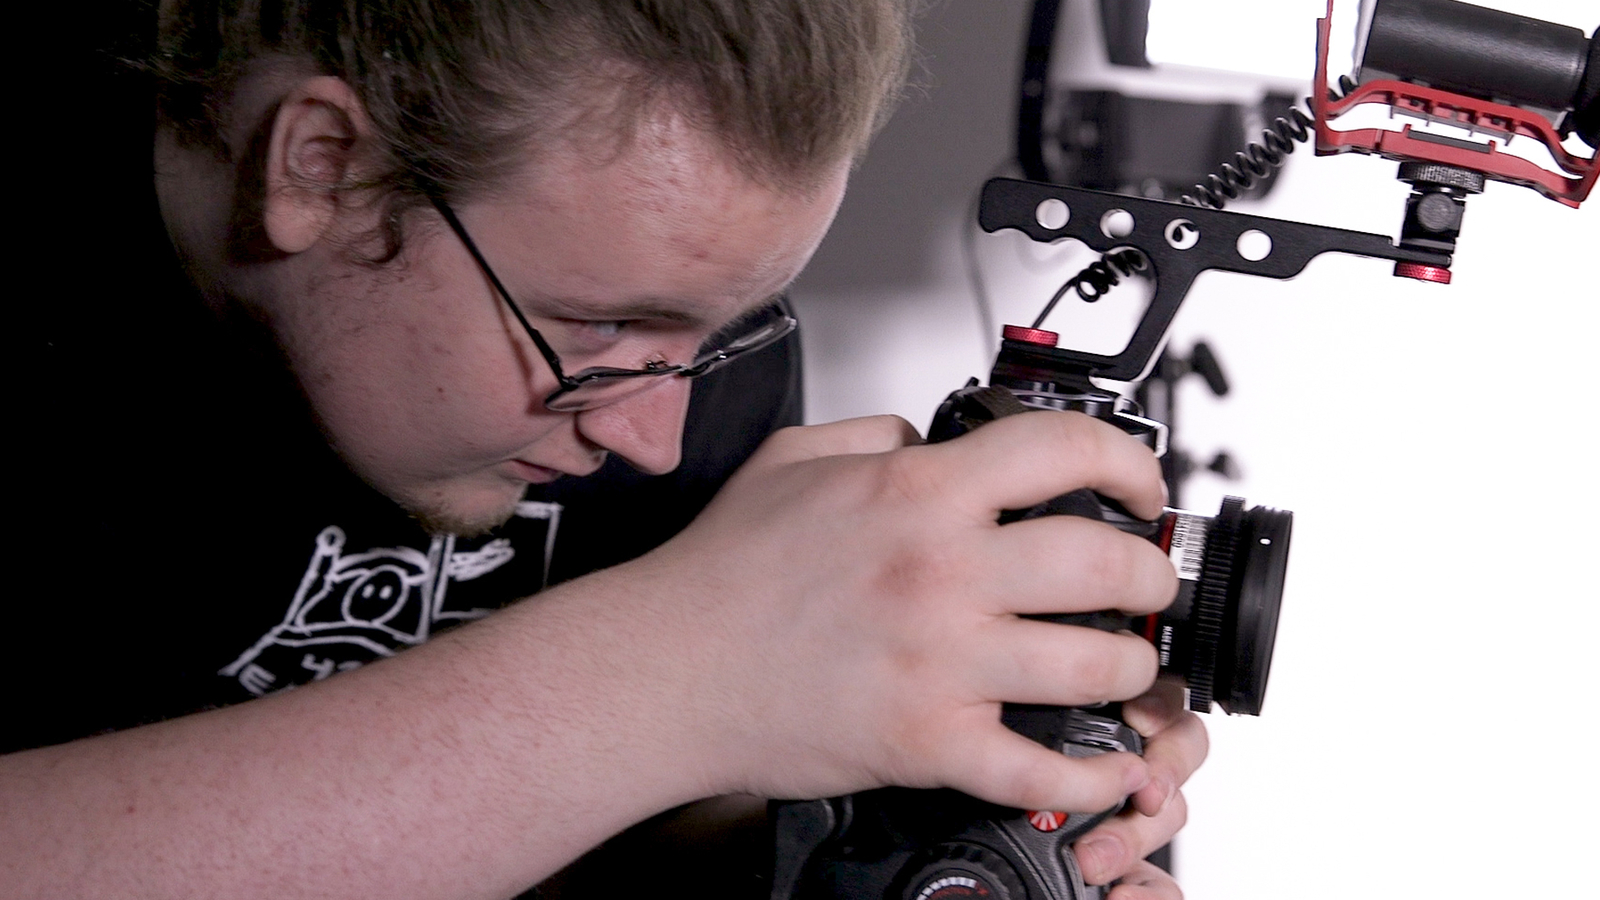 A student uses a DSLR camera to capture video in Rockefeller Arts Center